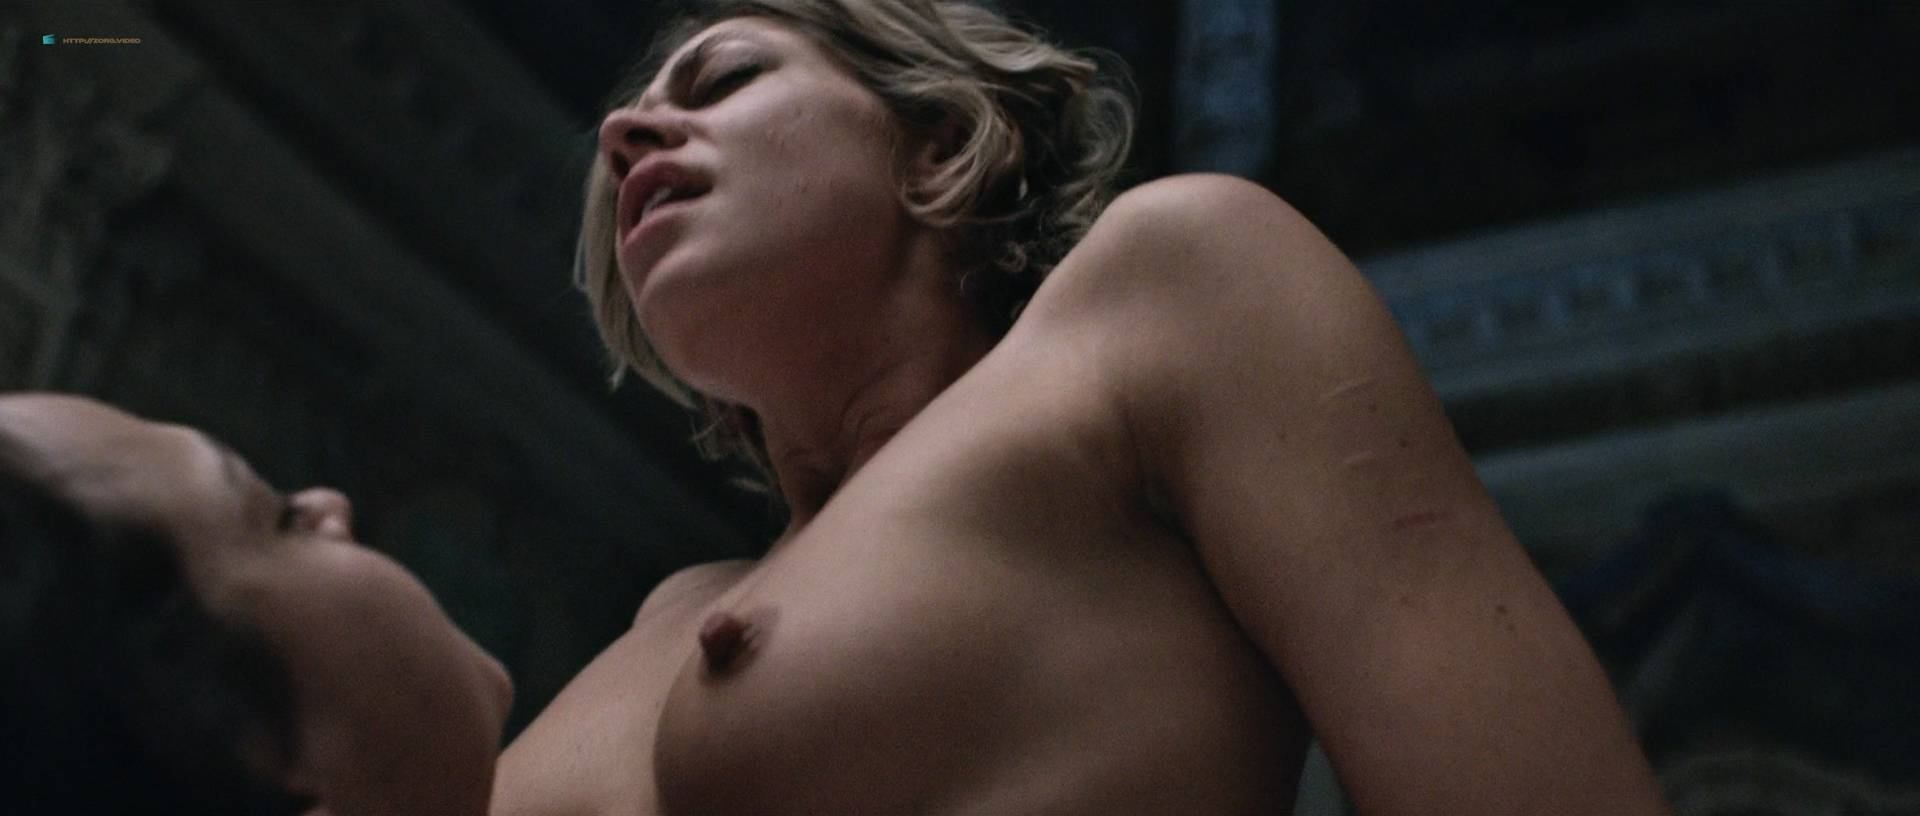 Analeigh tipton nude